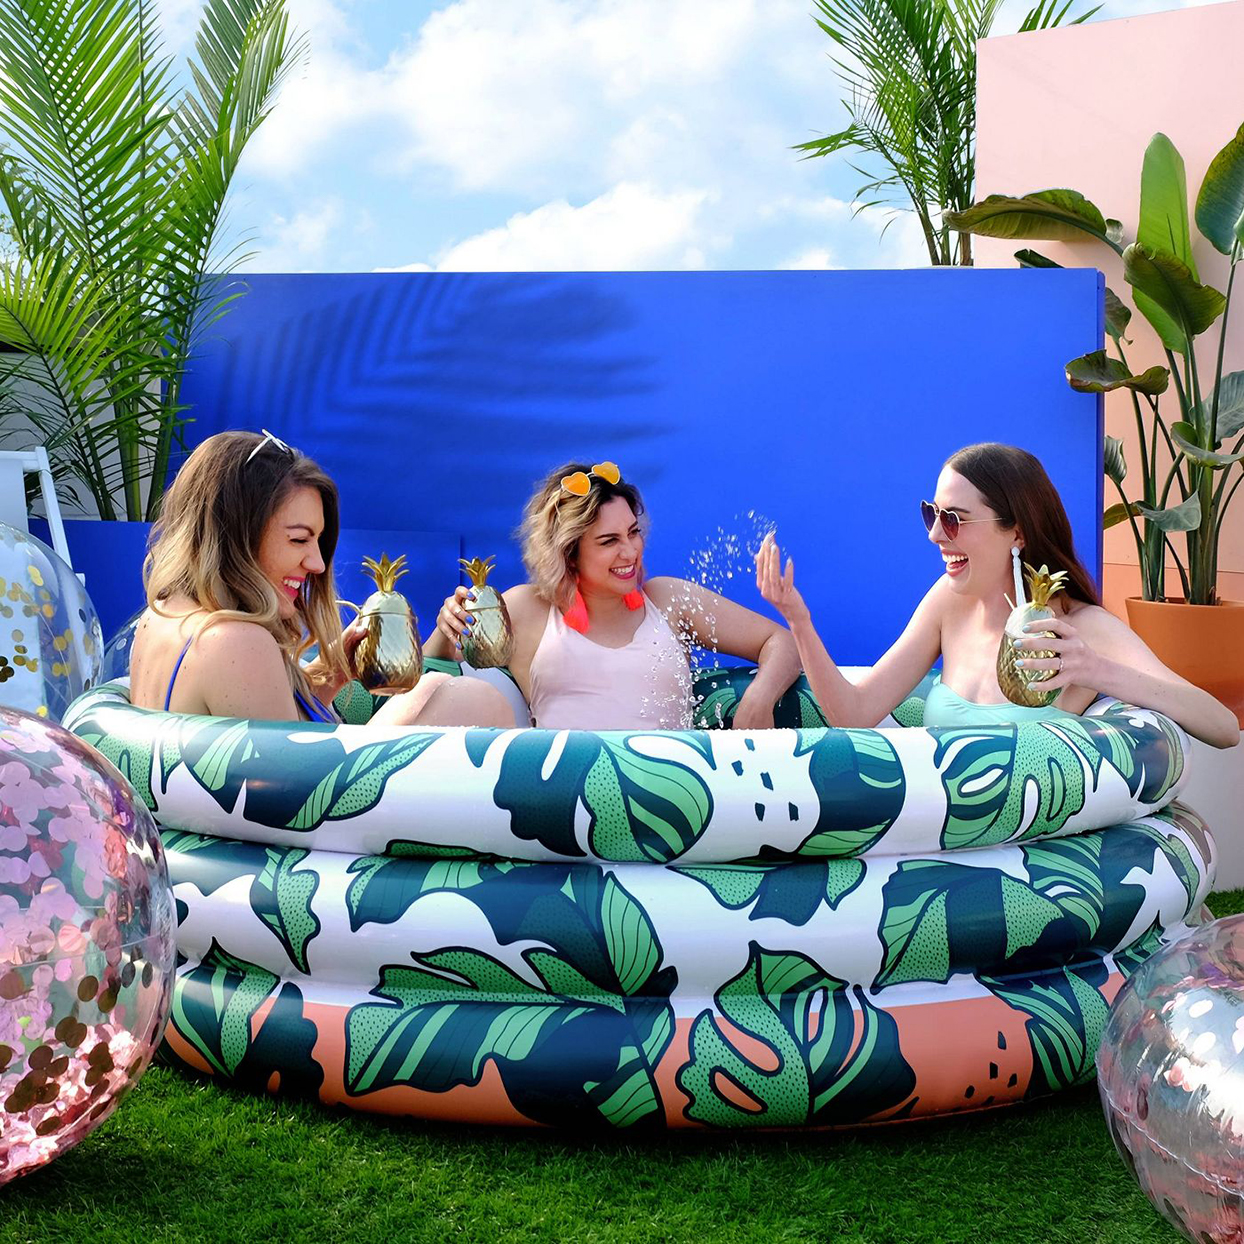 three women in inflatable pool